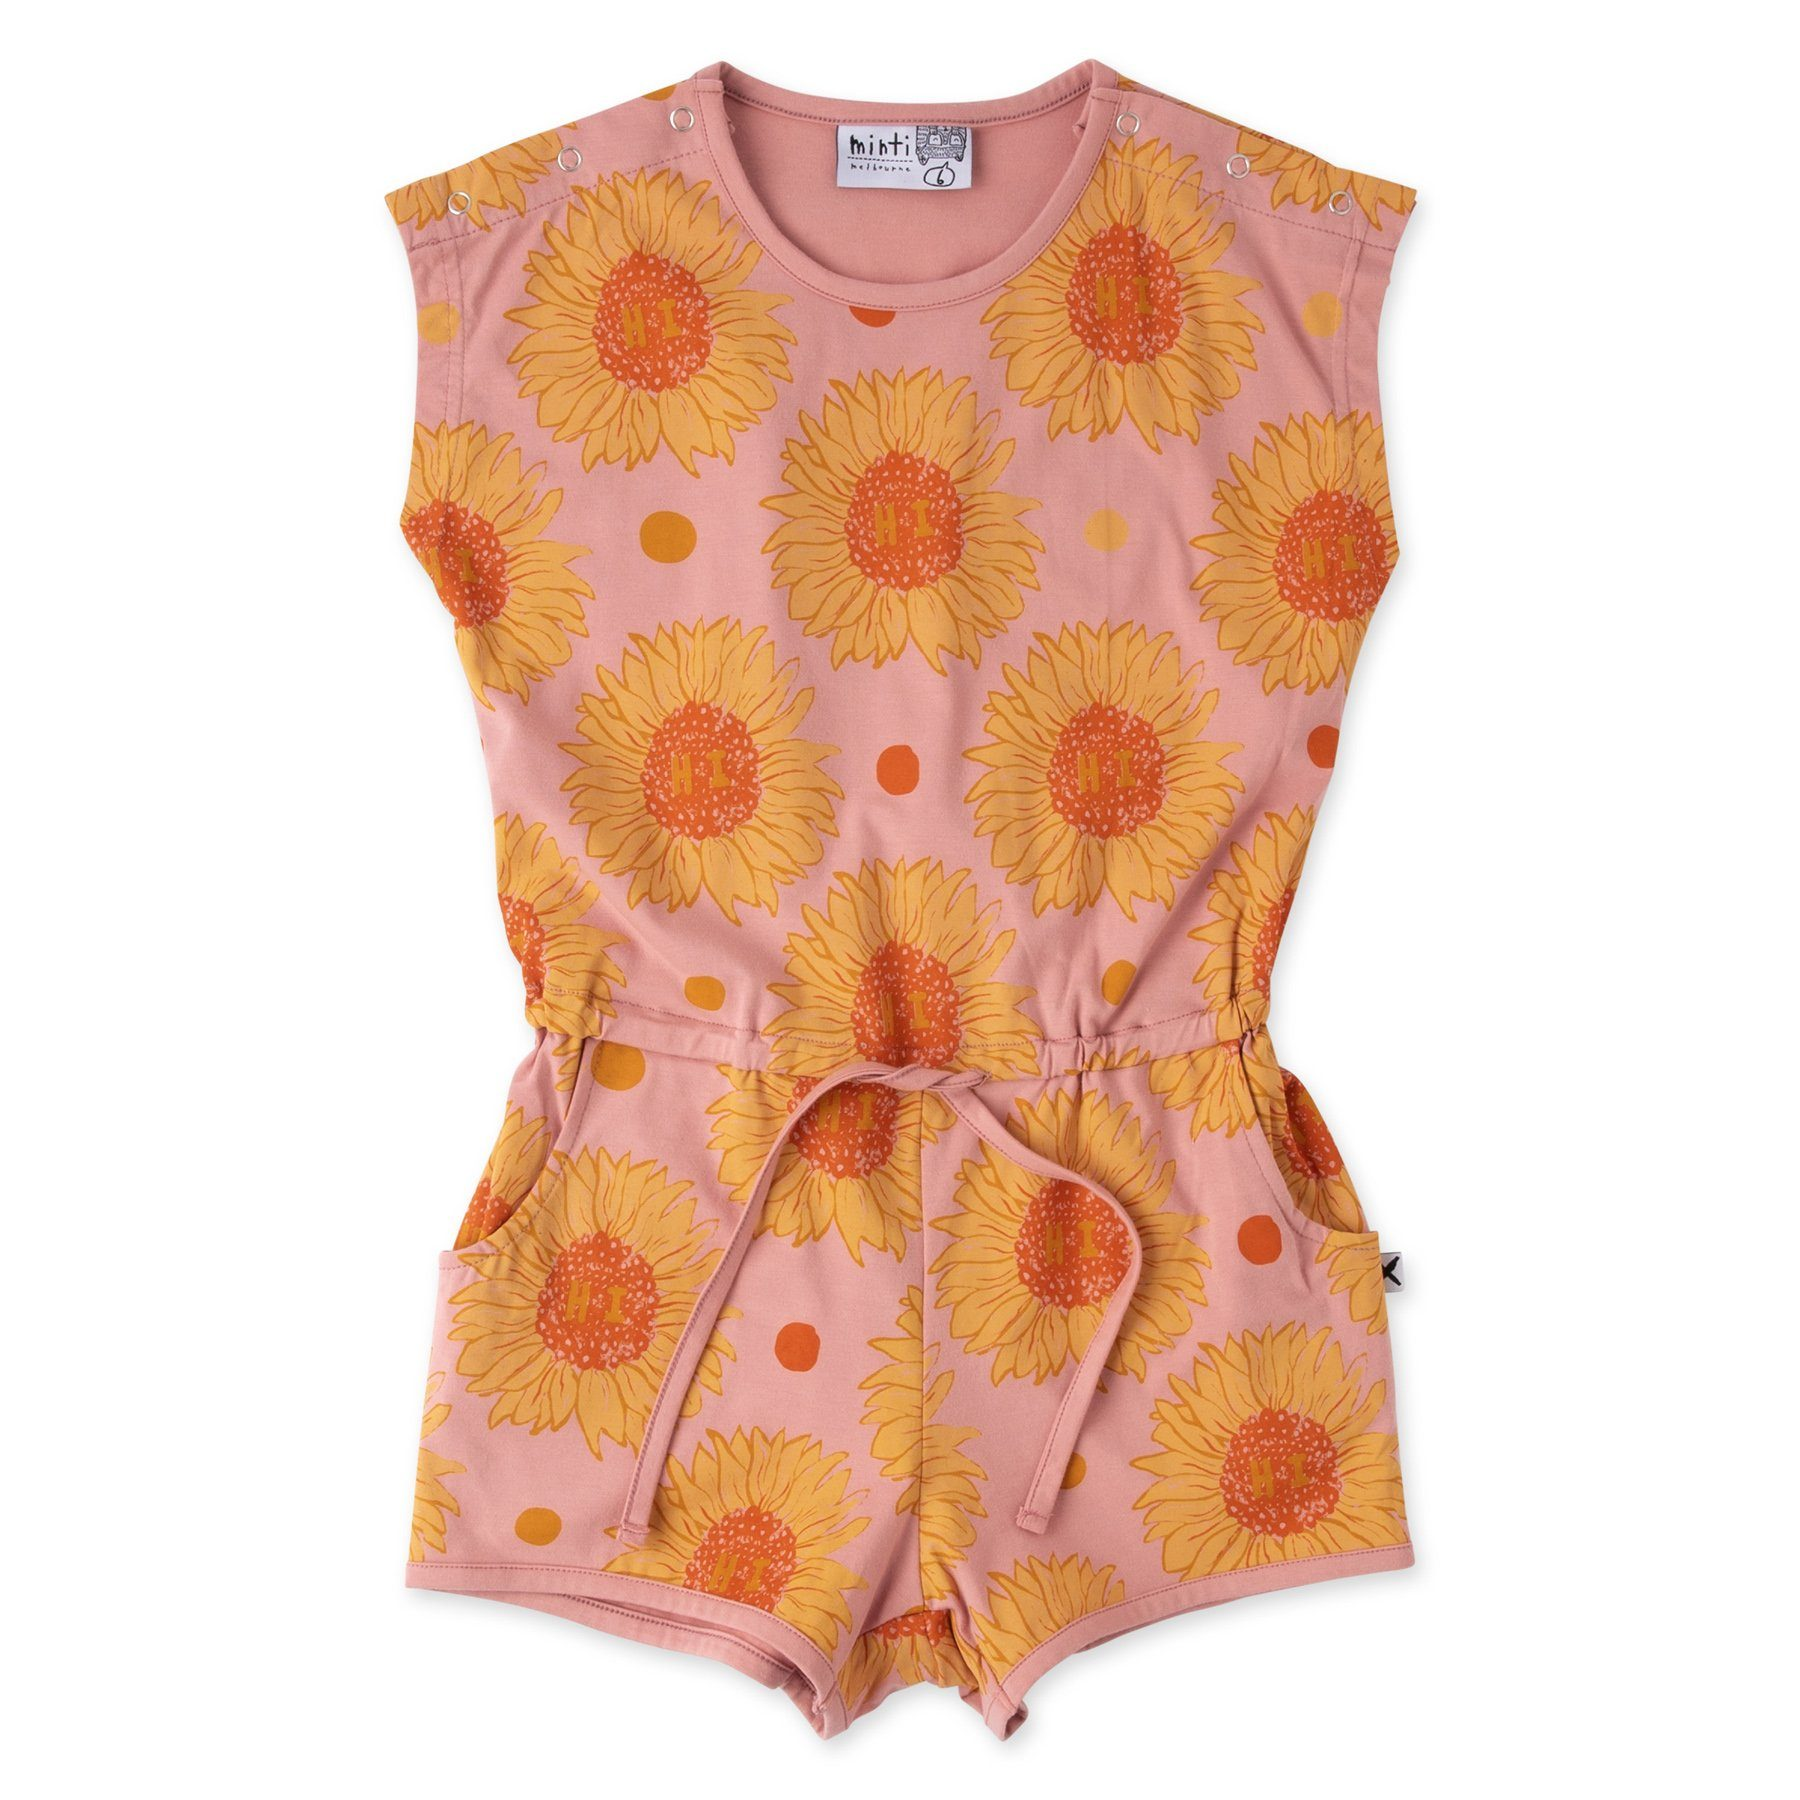 Friendly Sunflowers Playsuit